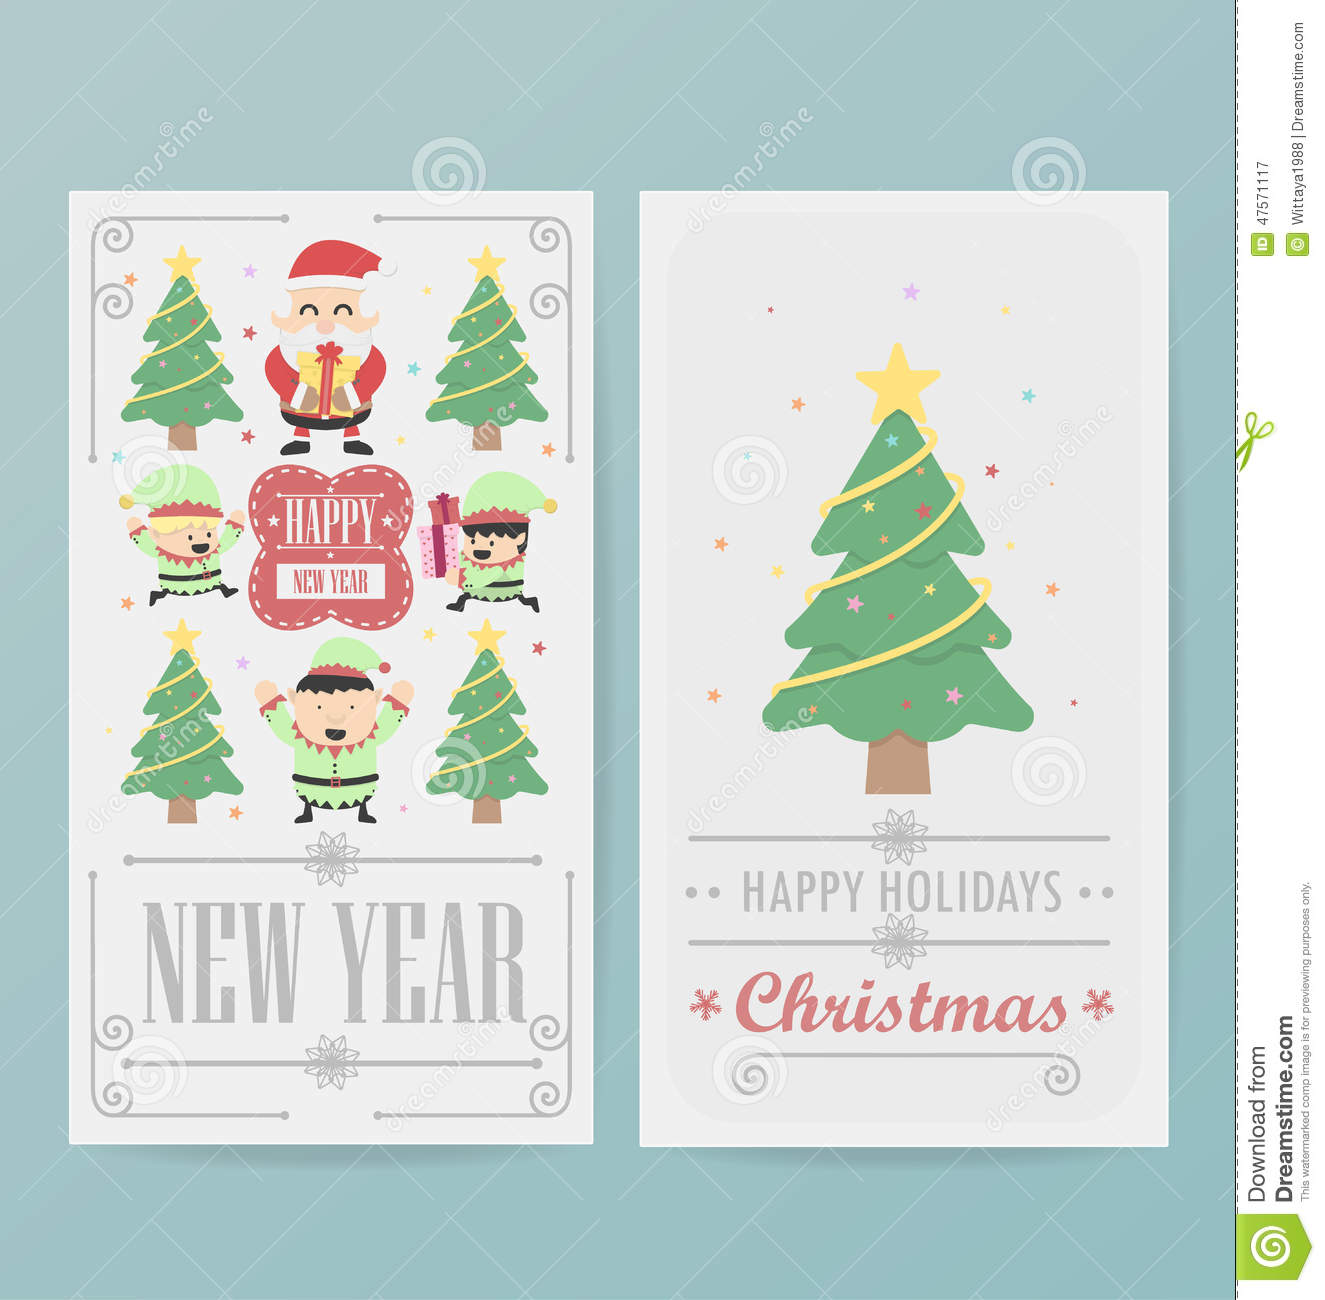 Christmas Card Design Layout Template Vector Image 47571117 – Christmas Card Layout